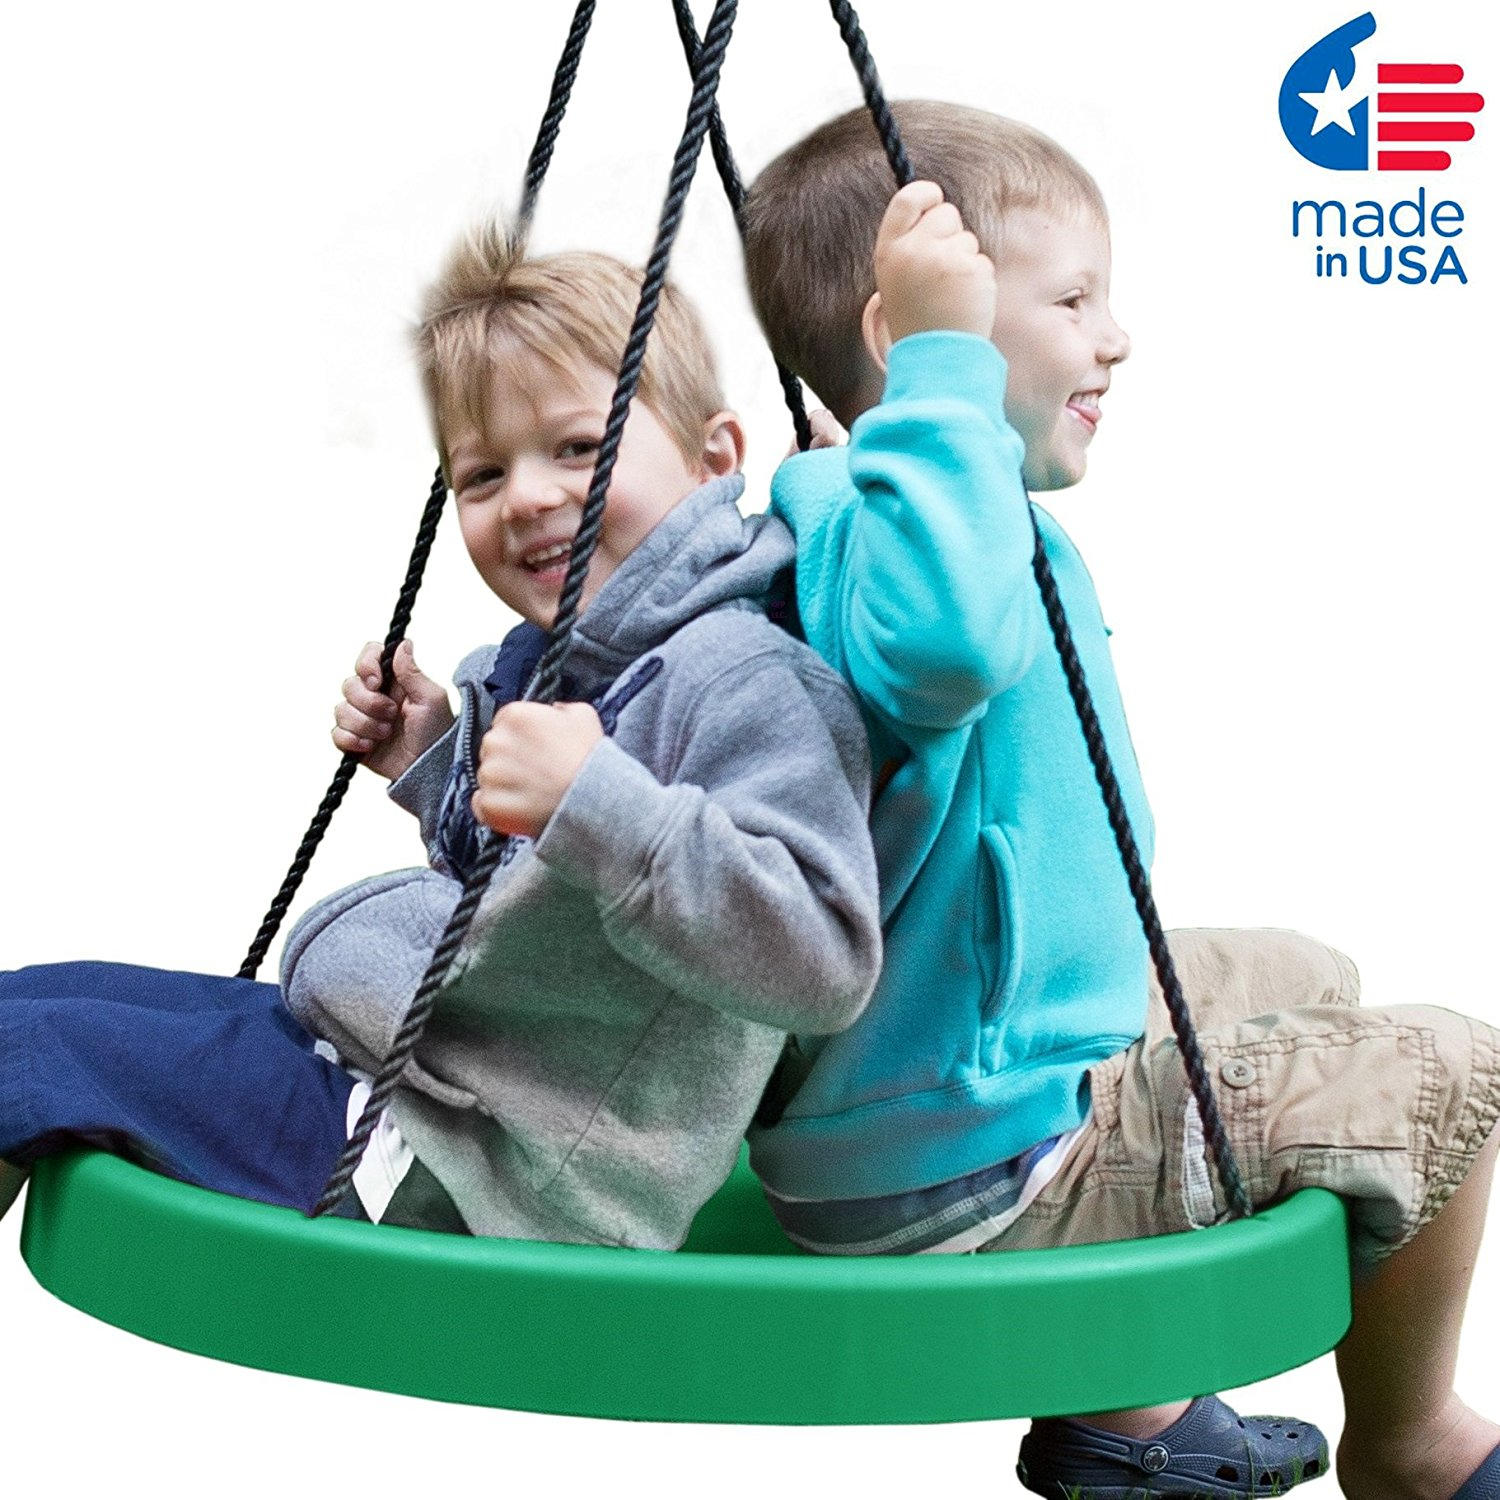 "Supper Spinner FUN 27"" Toddler Swing – Holds 200 Lbs, Tree Hanging Kit Included, 2 Year Warranty, Made in USA"